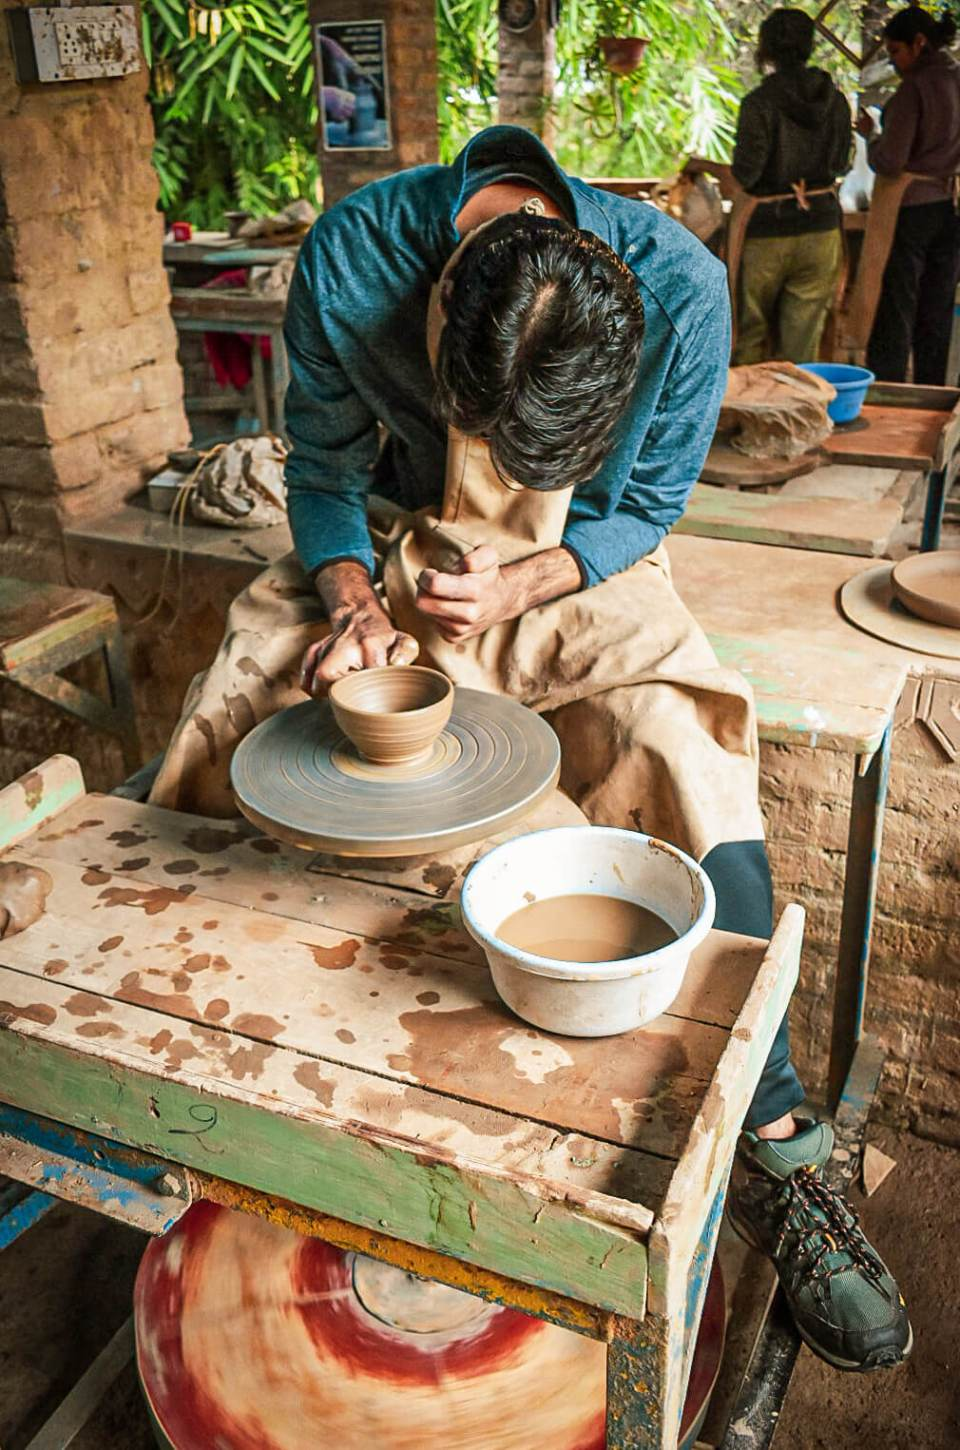 A person self practicing the process involved in pottery making